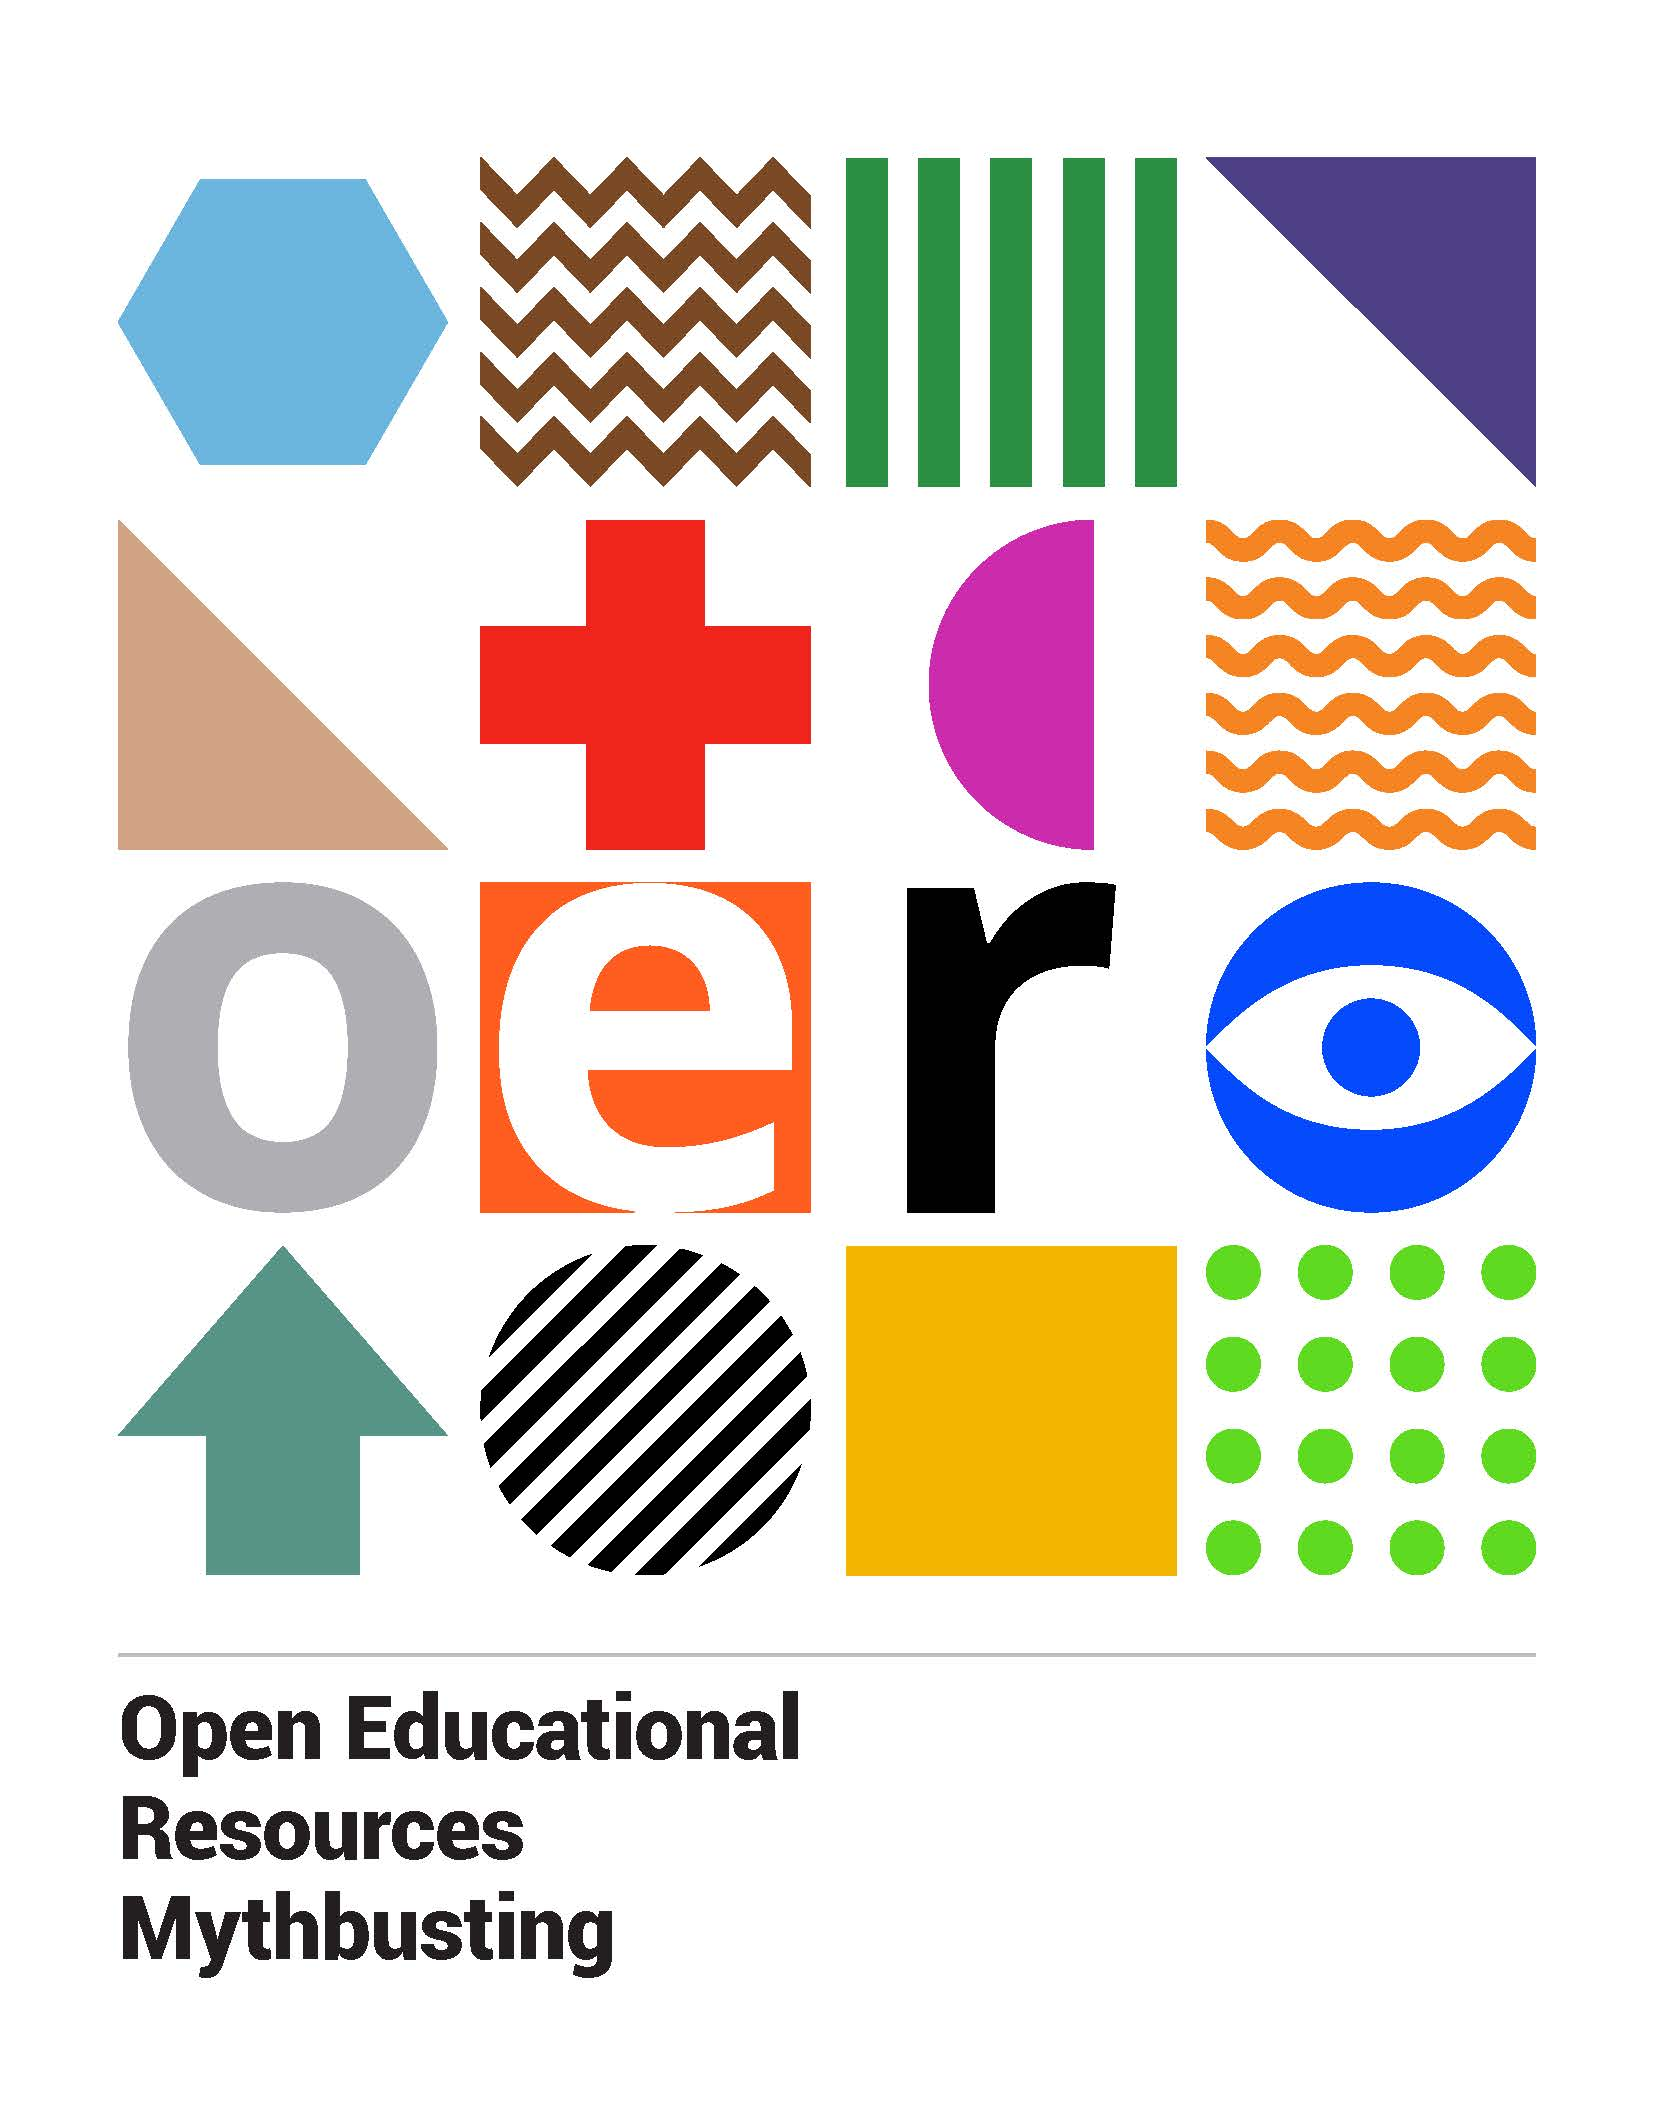 Open Educational Resources Mythbusting